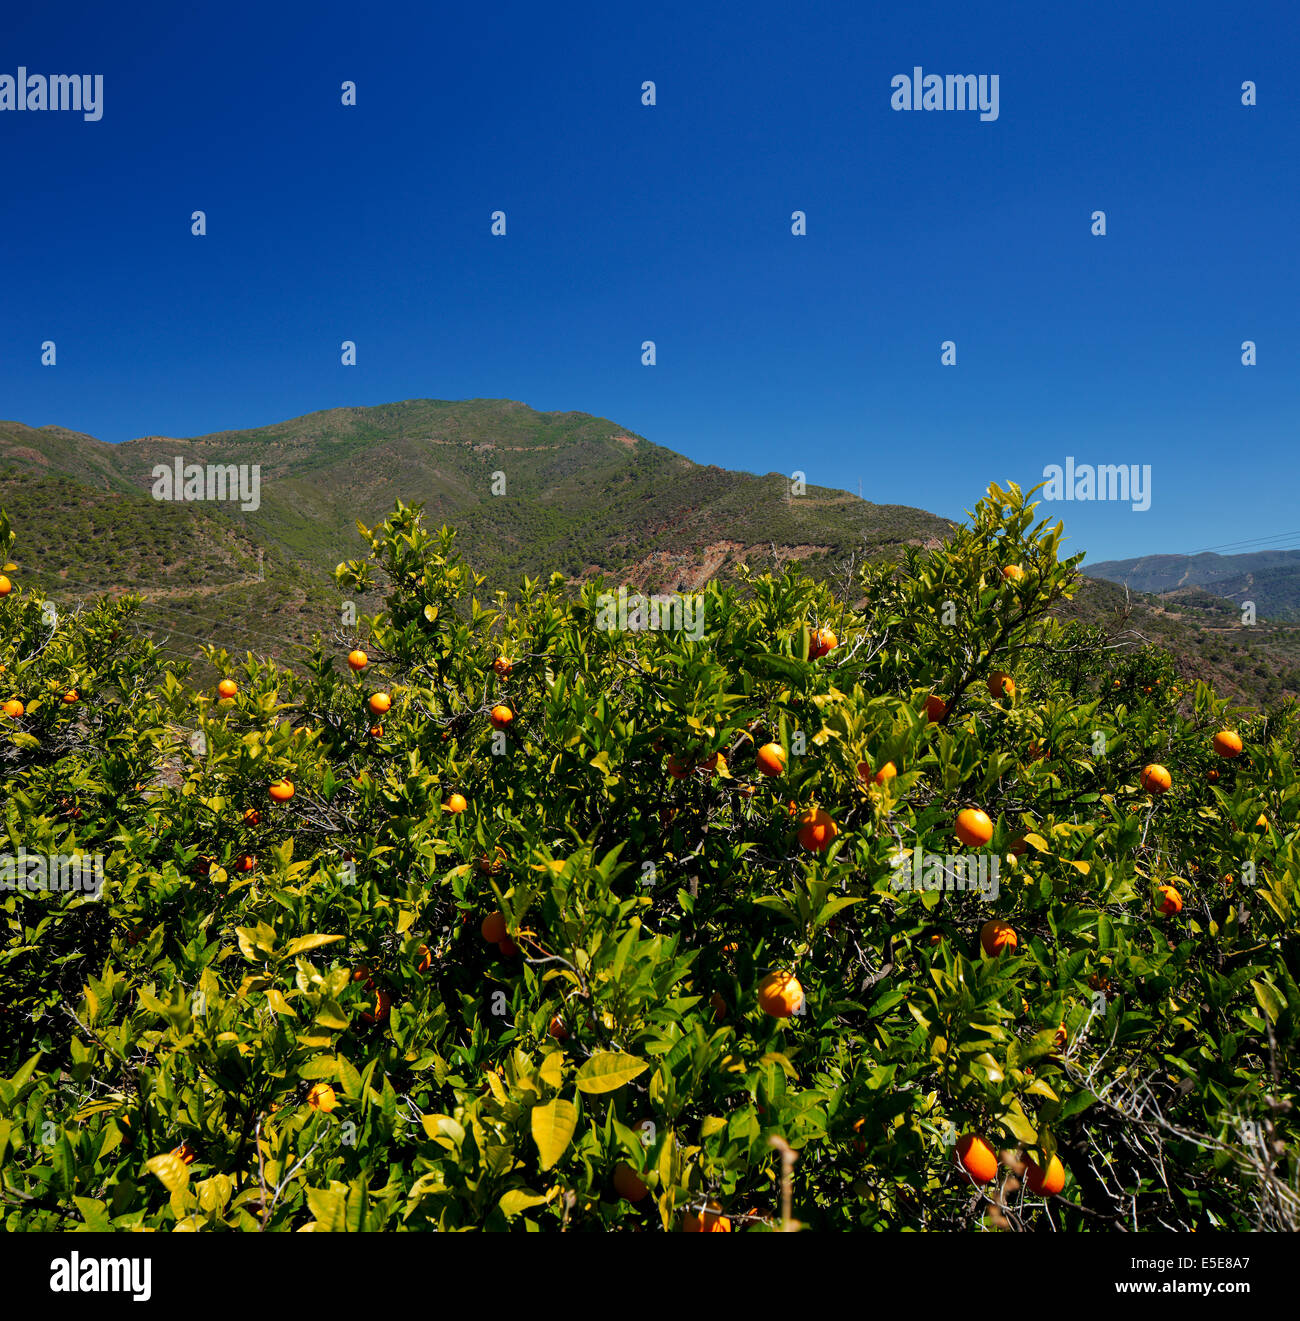 Orange trees with fruits in the southern Andalusia, Spain against a magnificent mountain on a clear sunny day - Stock Image